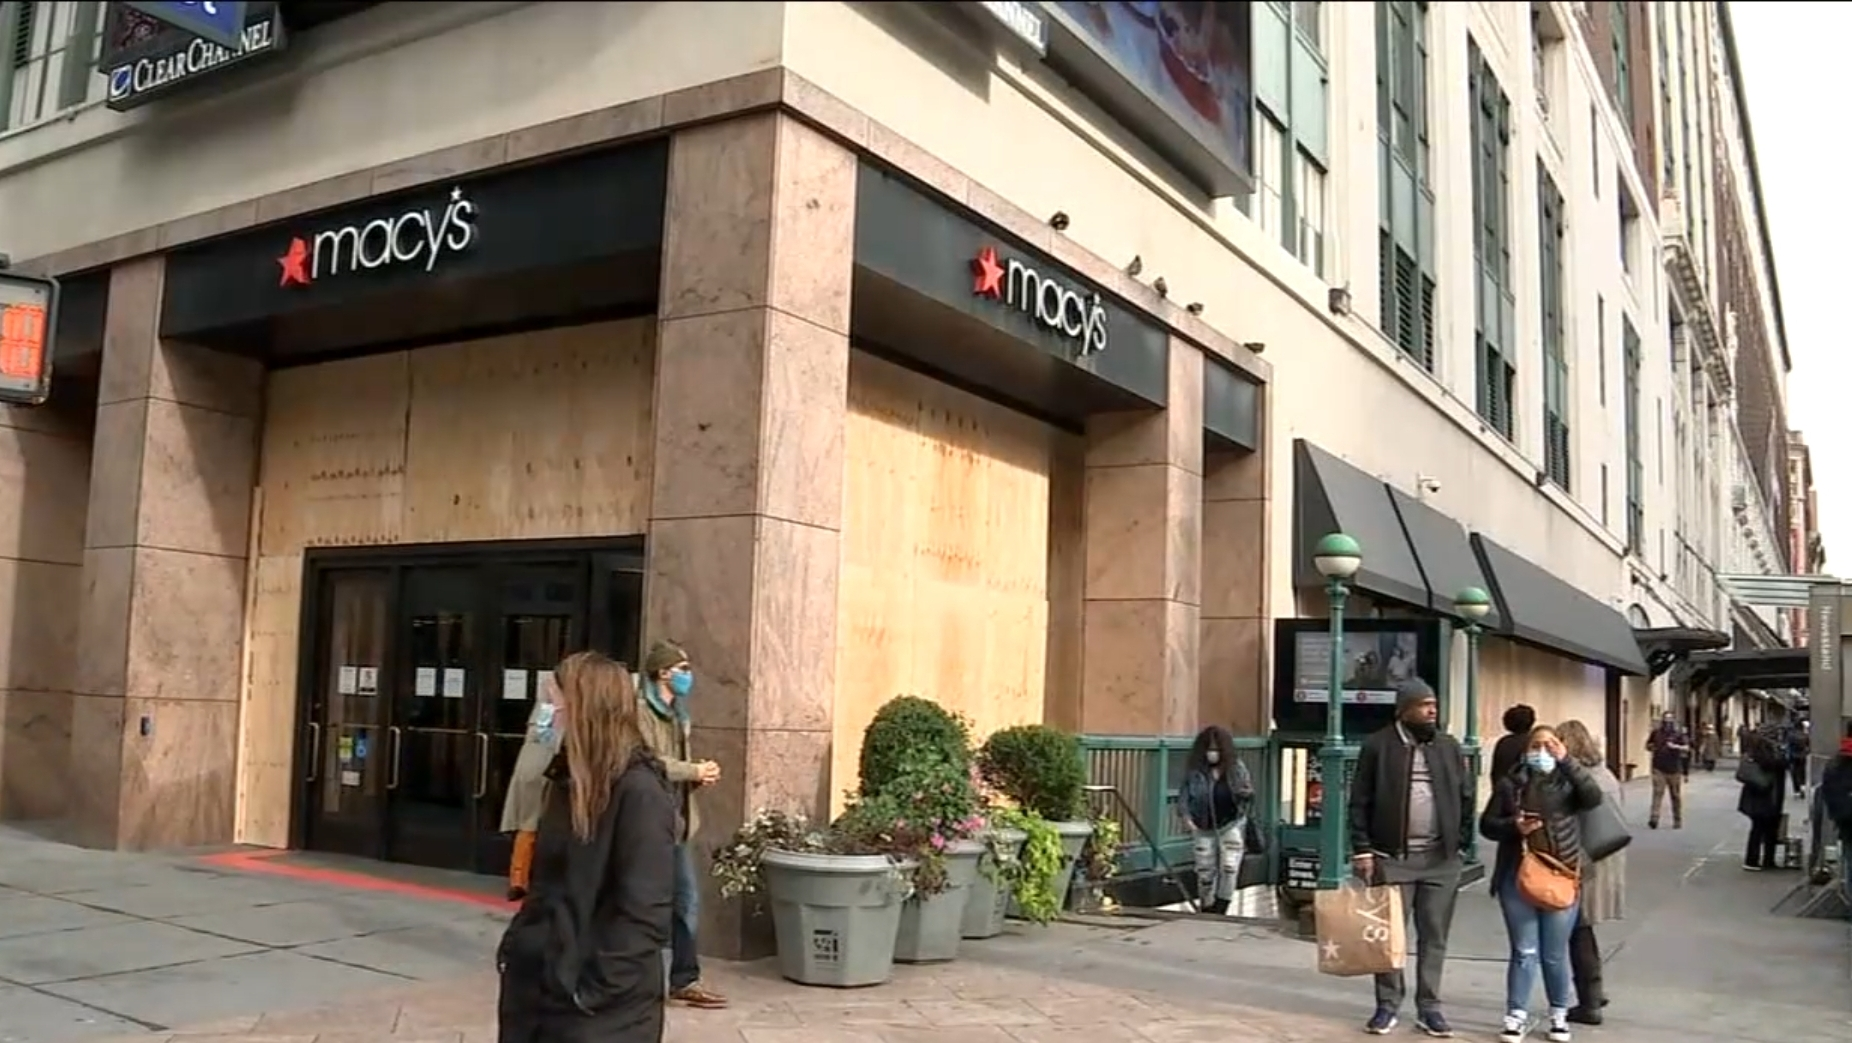 Macy's Boards it's windows ahead of election possible civil unrest